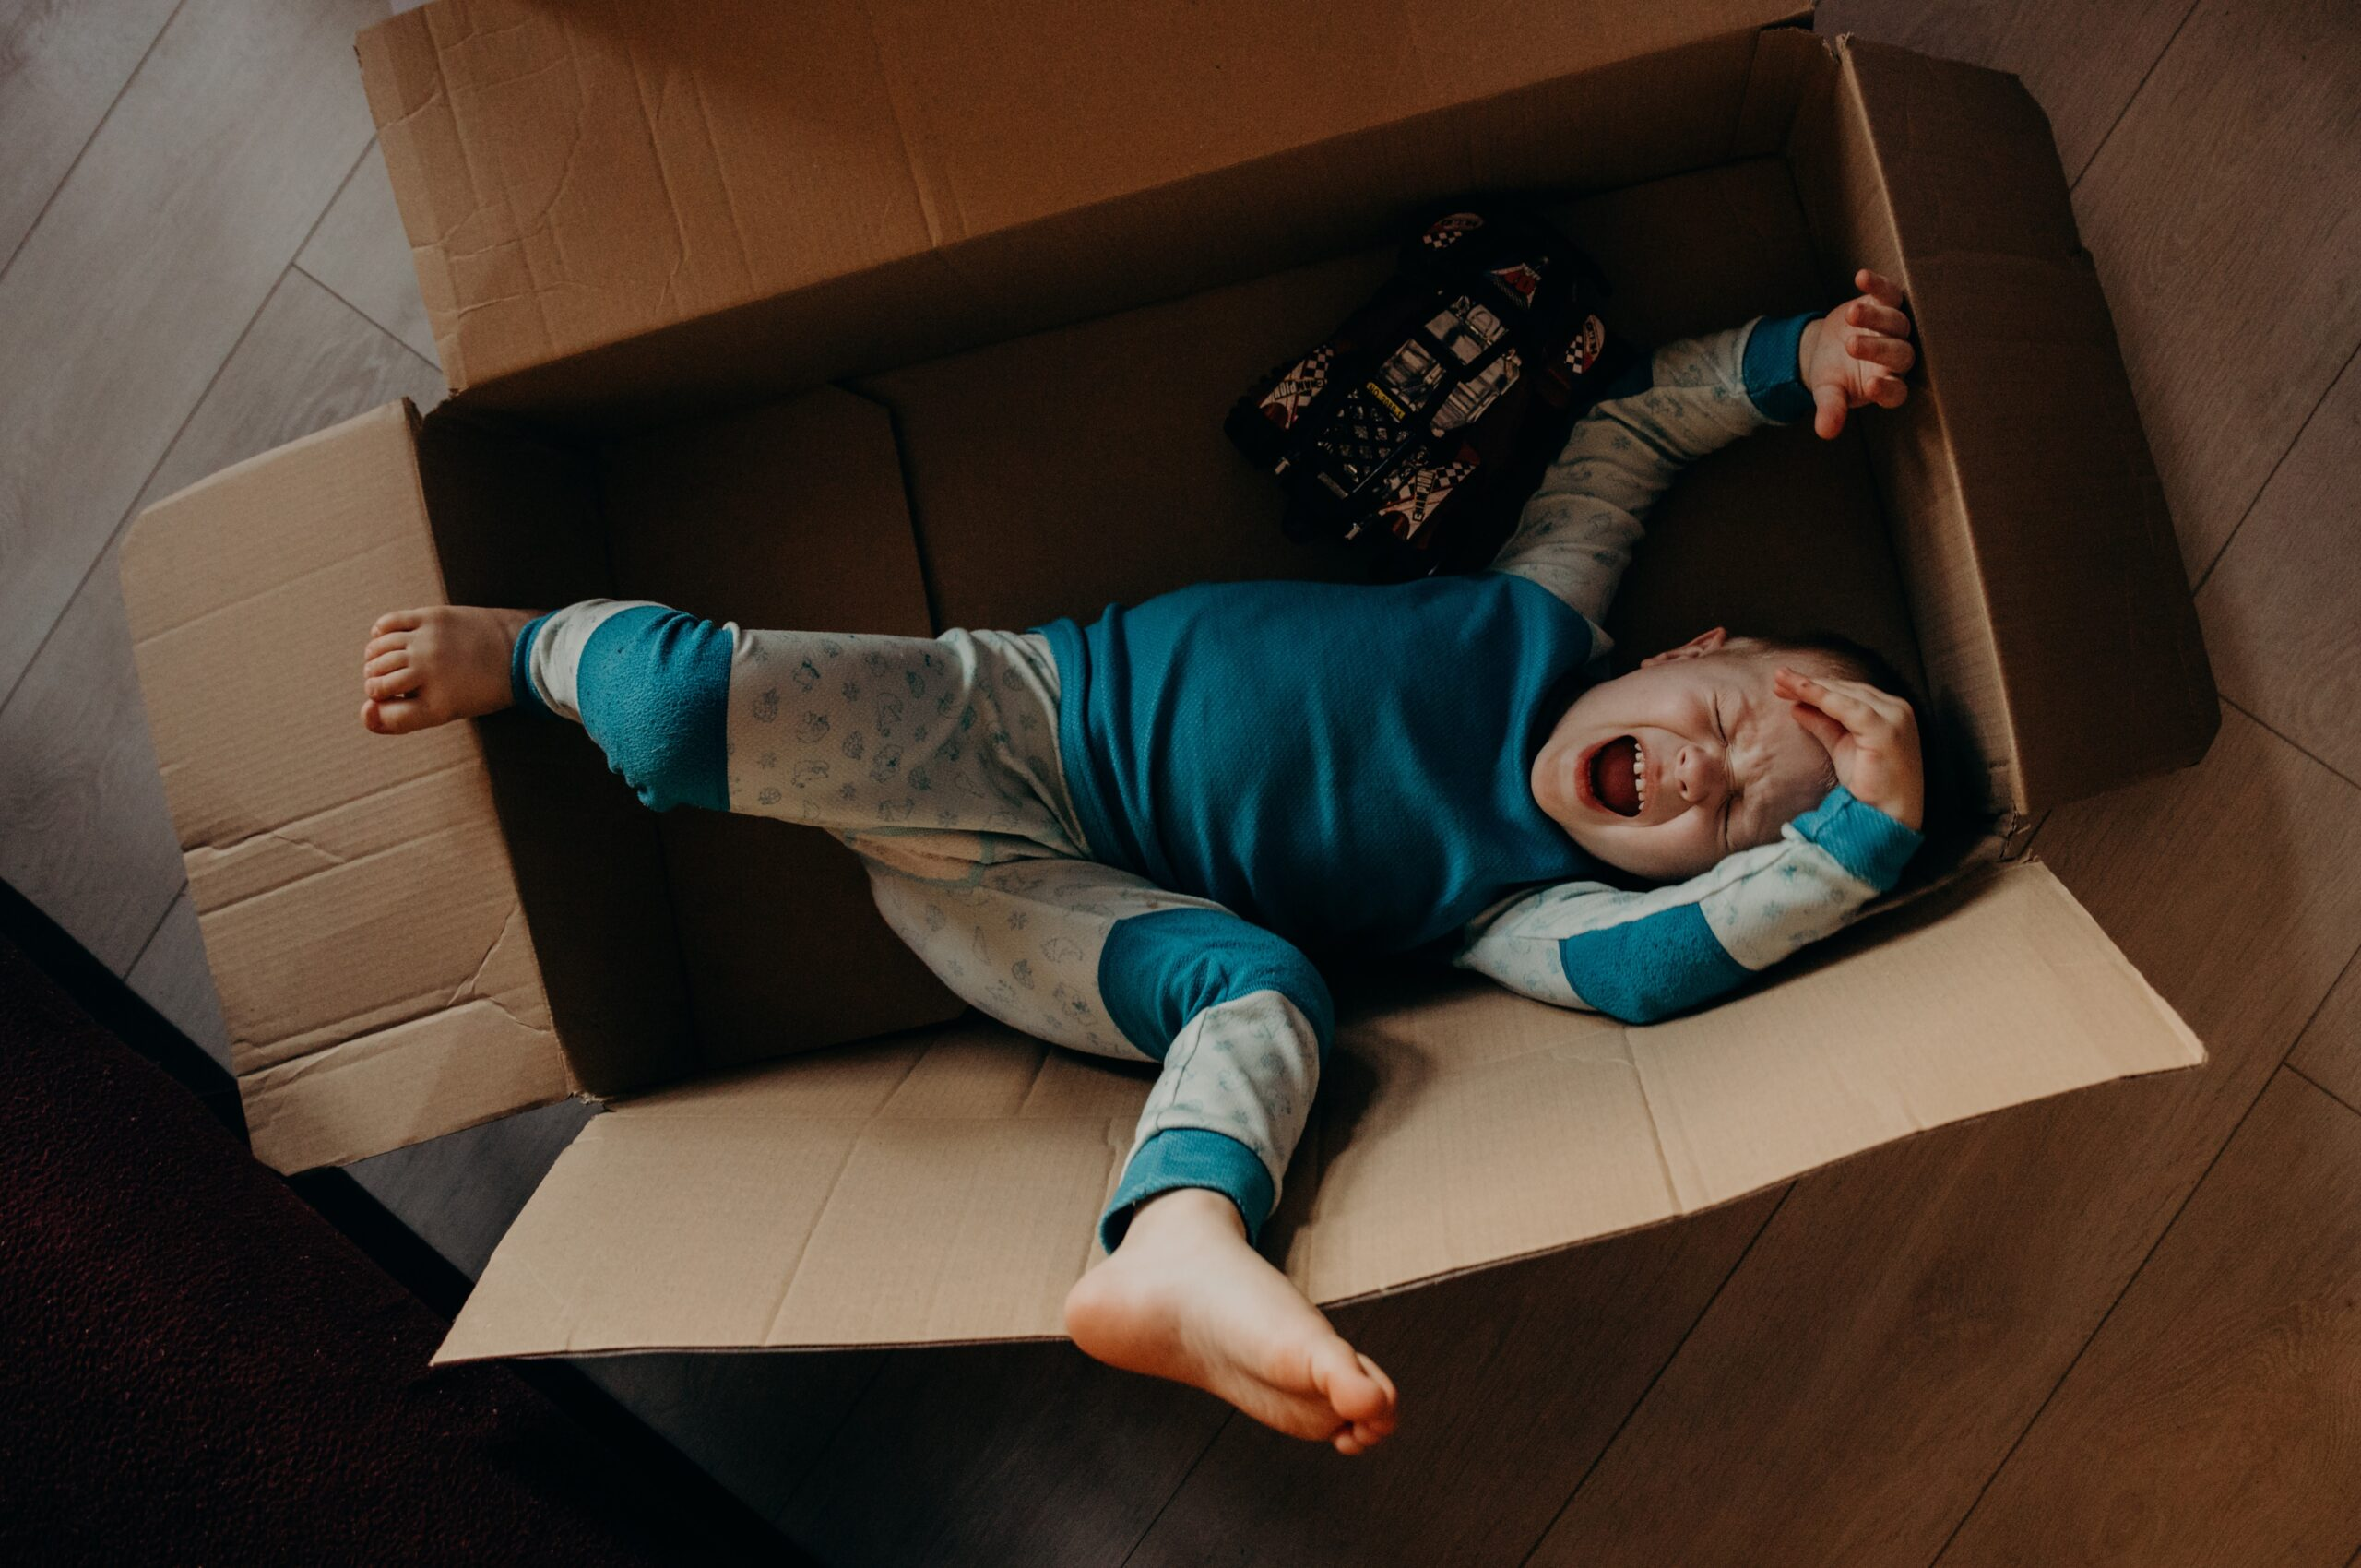 a child having a tantrum meltdown inside a cardboard box representing the kind of behaviour many children with a PANS-PANDAS diagnosis exhibit